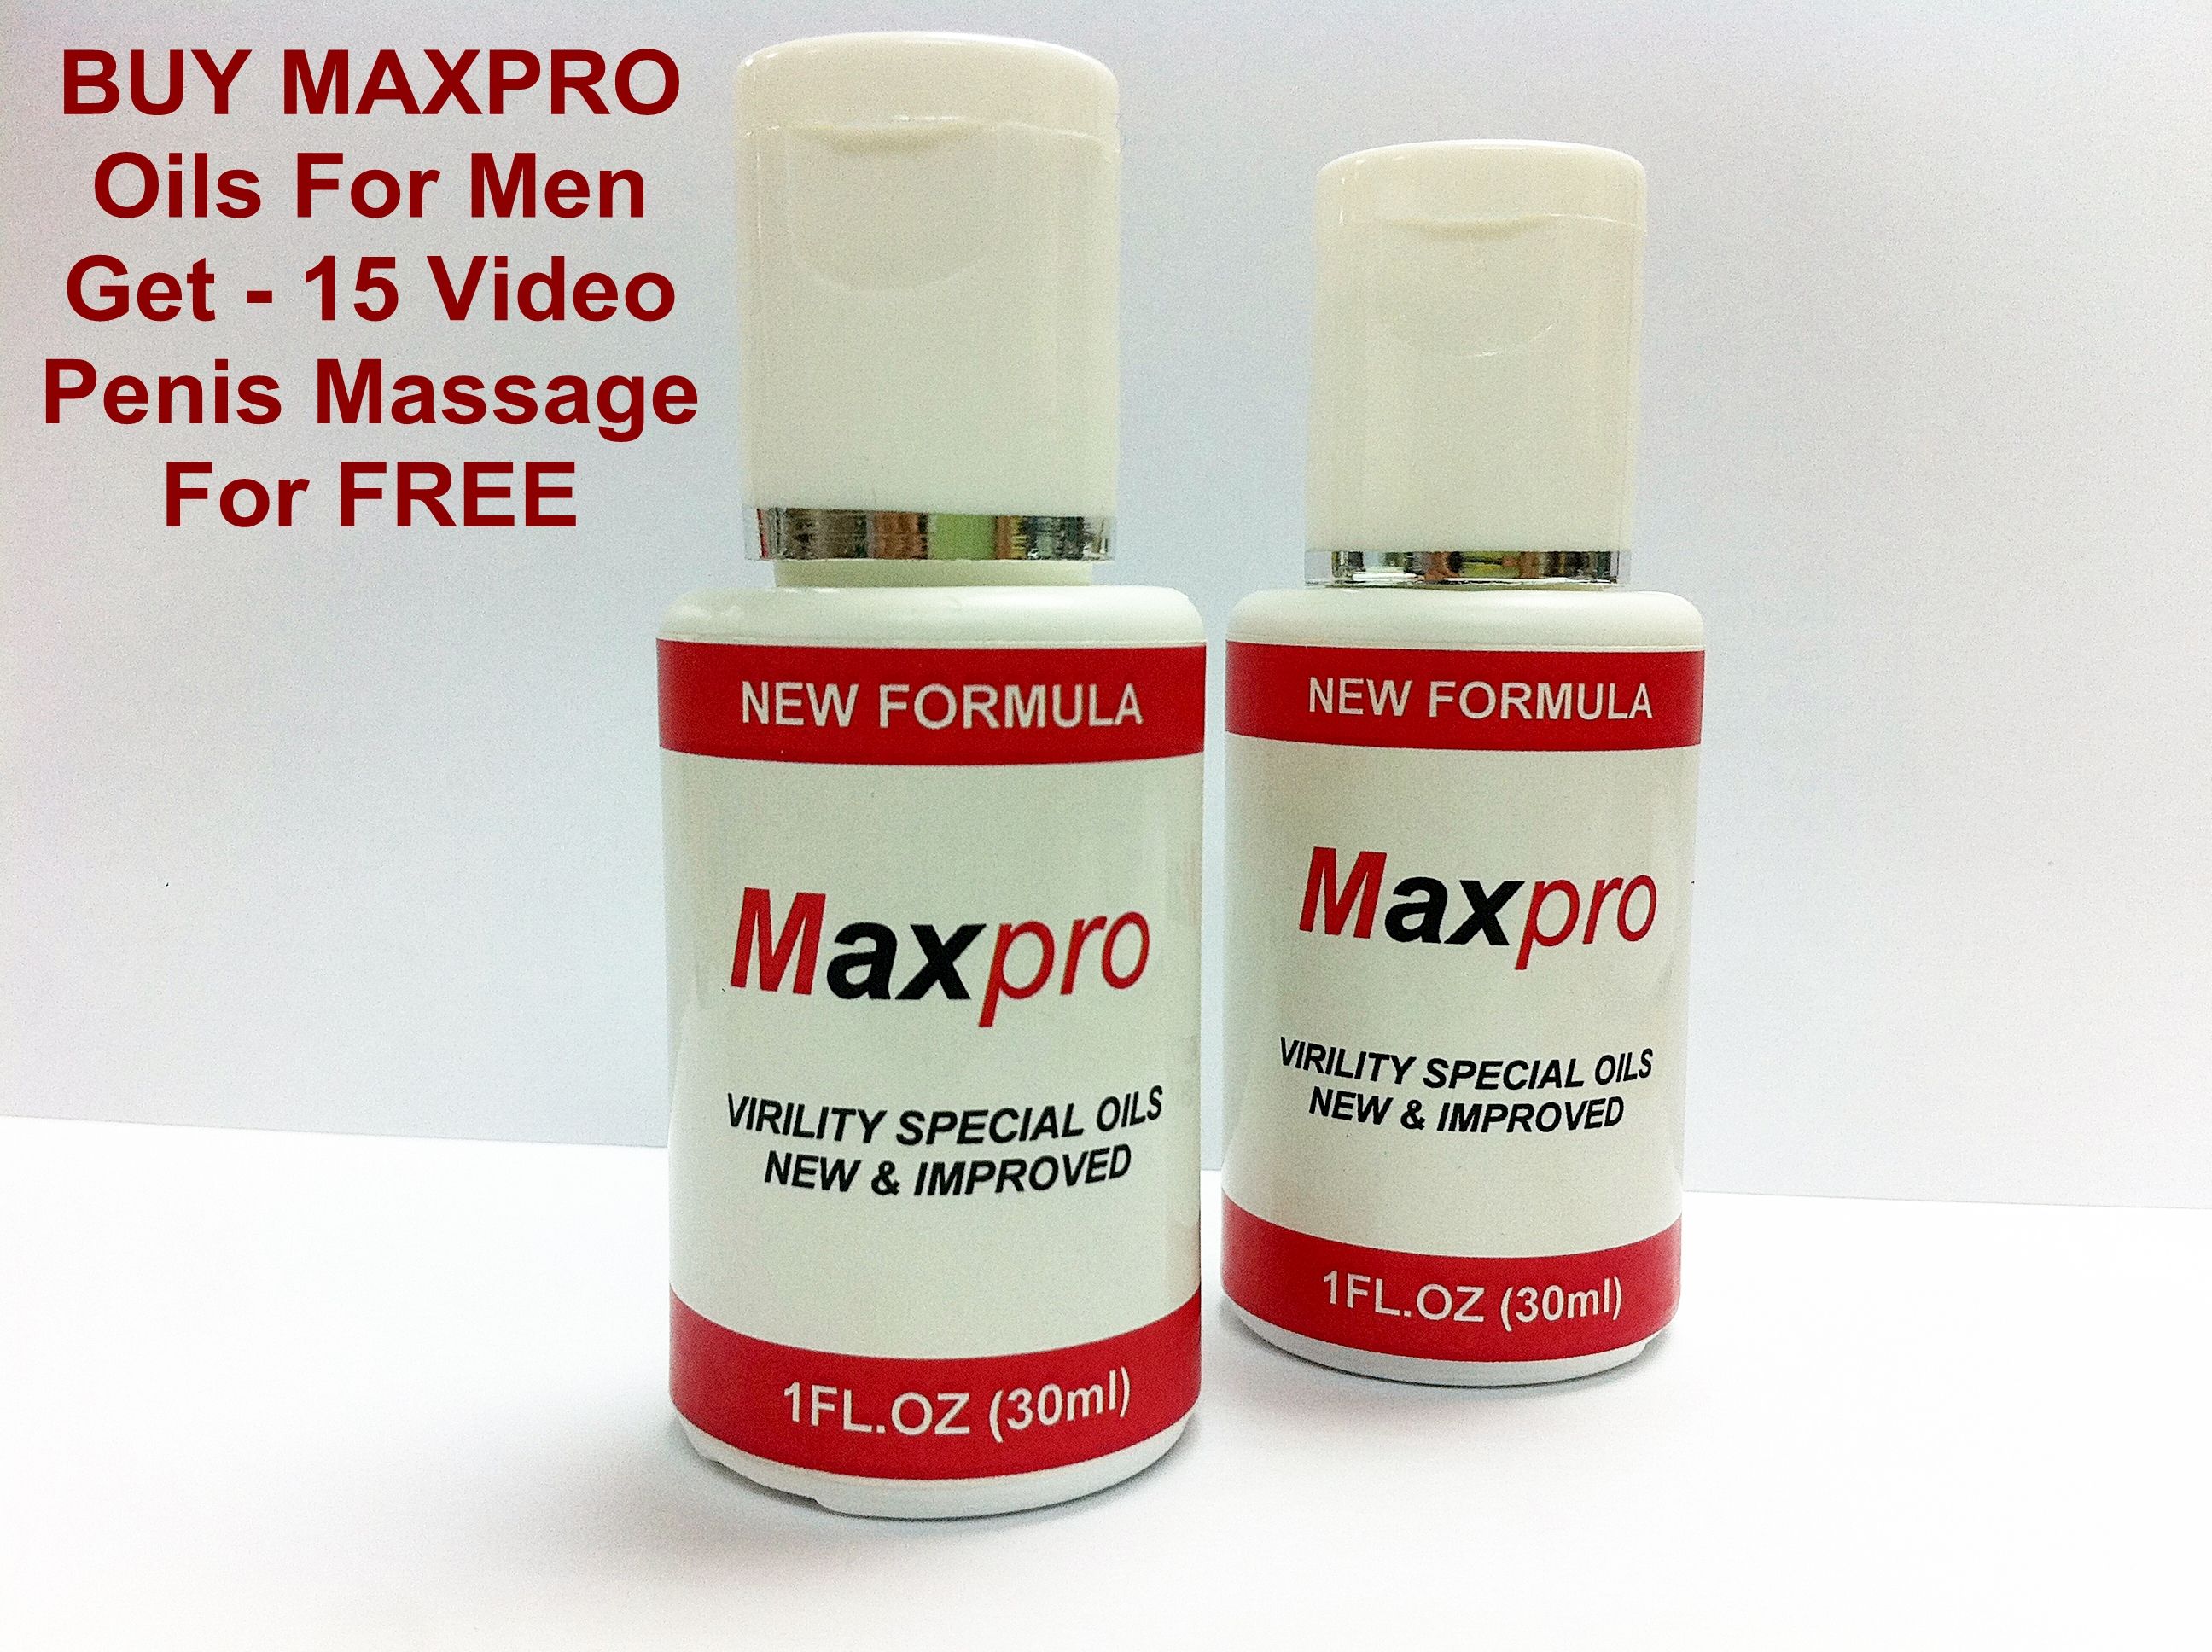 Maxpro Massage Oils Free Penis Massage Technique